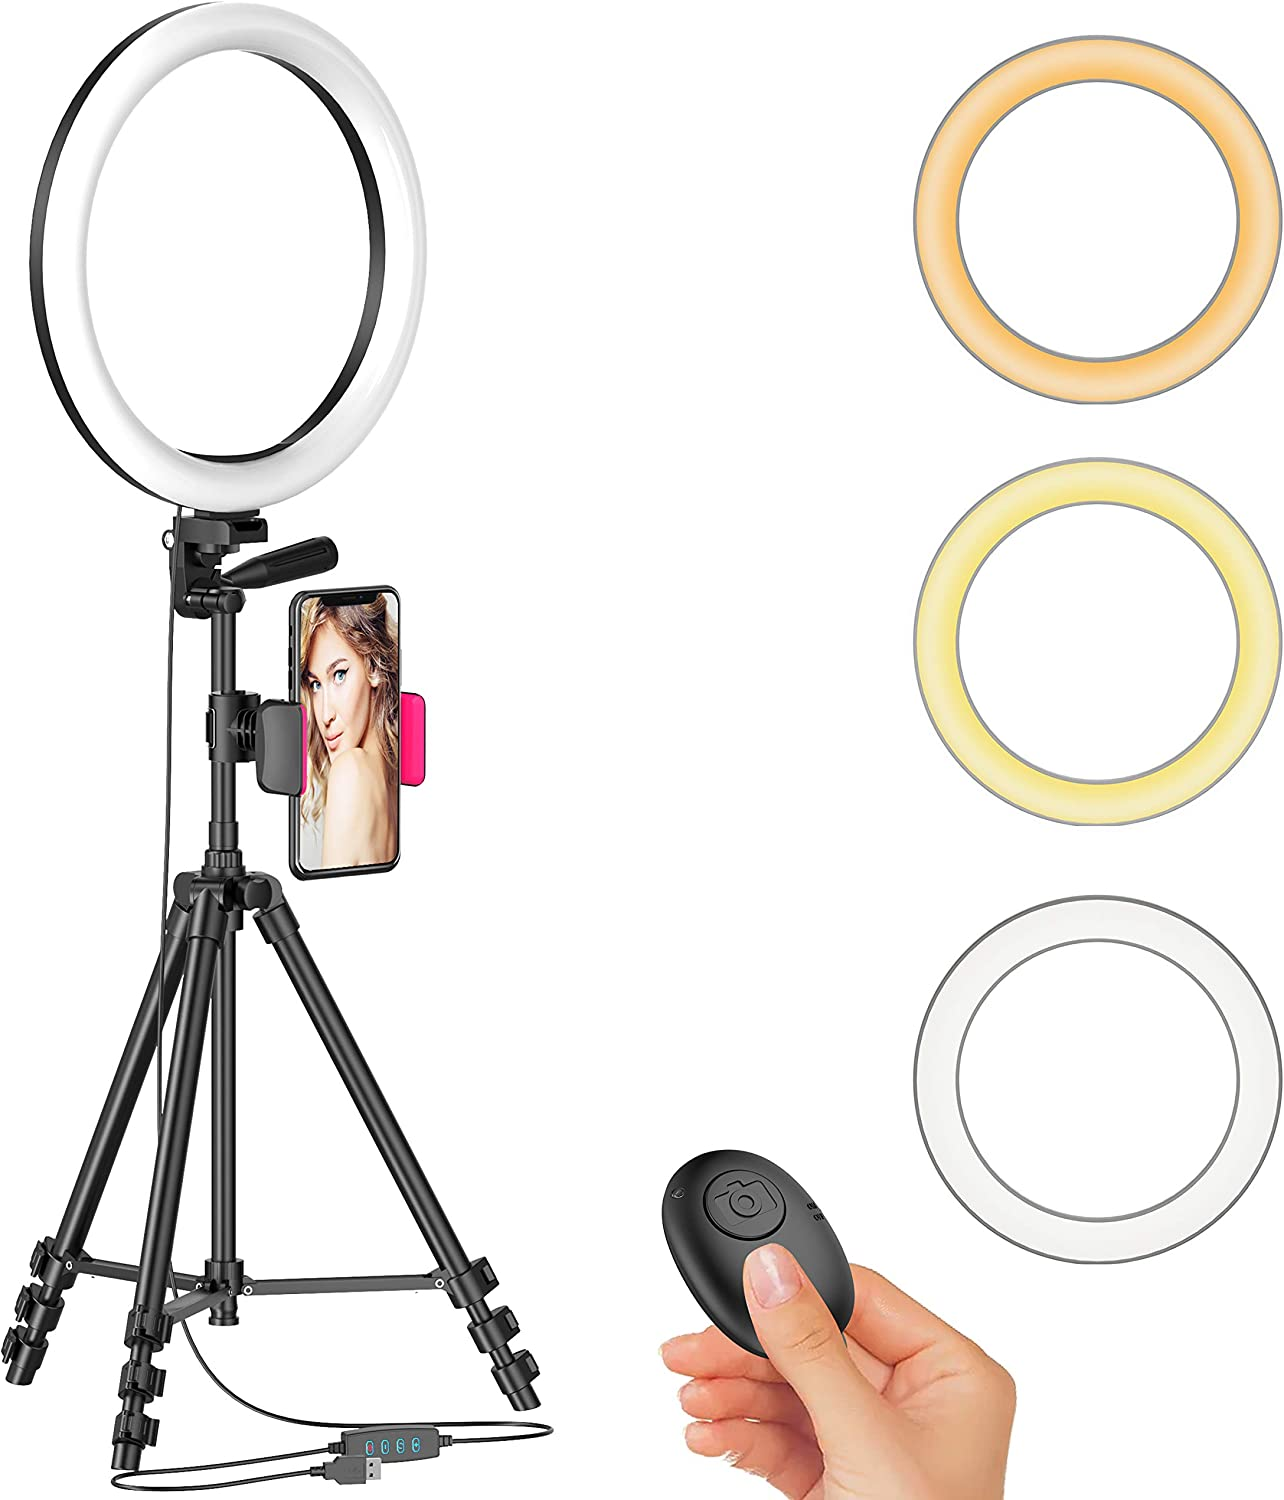 "12"" LED Selfie Ring Light with Tripod Stand & Cellphone Holder for Live Stream/Makeup/YouTube Video, Dimmable Beauty Ringlight, Color Temperature 3000K-6000K, 168Bulbs, Remote"